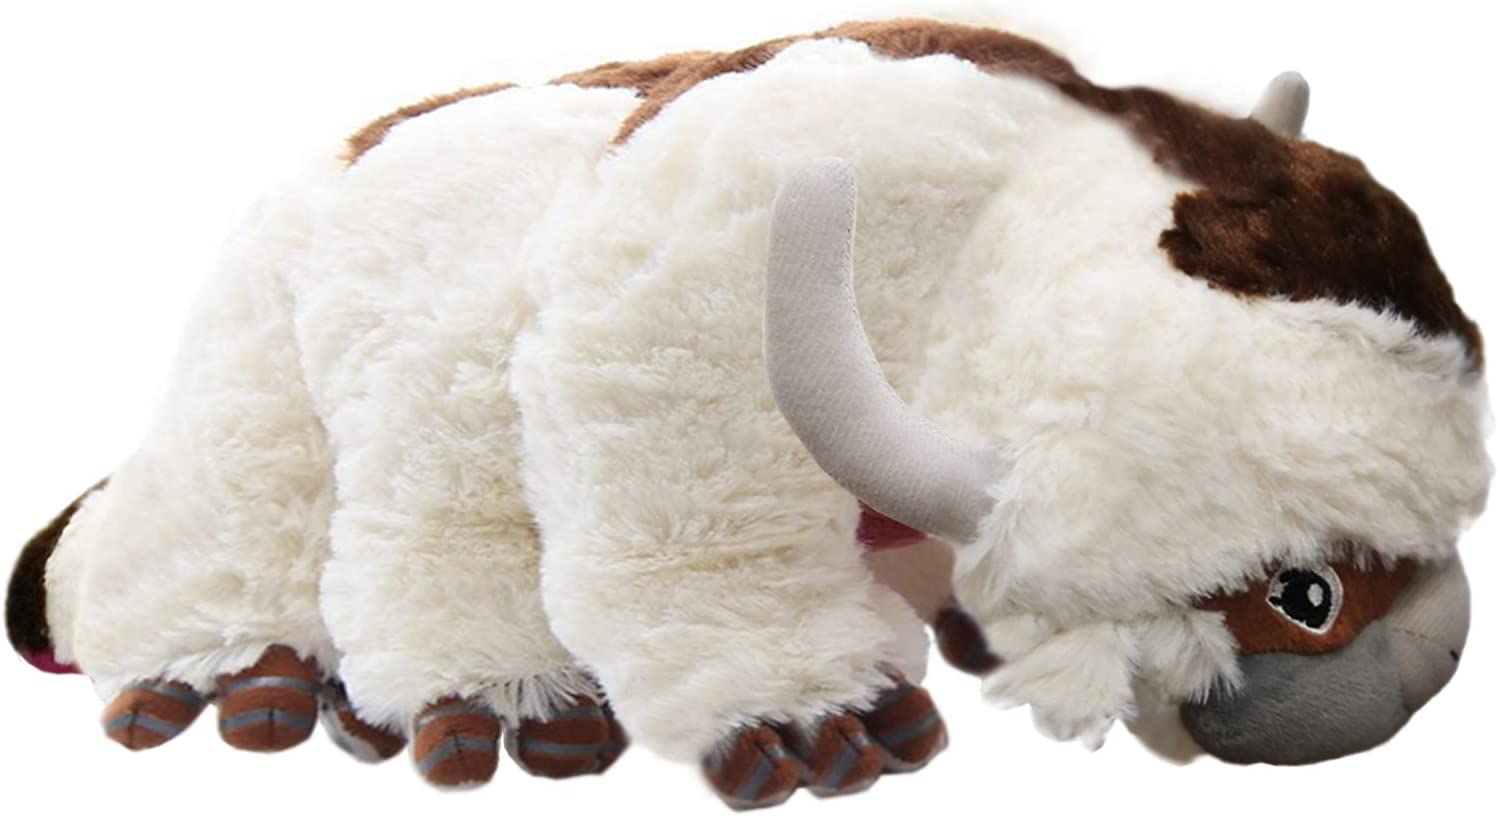 JoeRita Cow Plush Stuffed Dolls Child Home Sofa Decor Cattle Doll Pillow Cushion Toy for Birthday Party 17 inches (M)